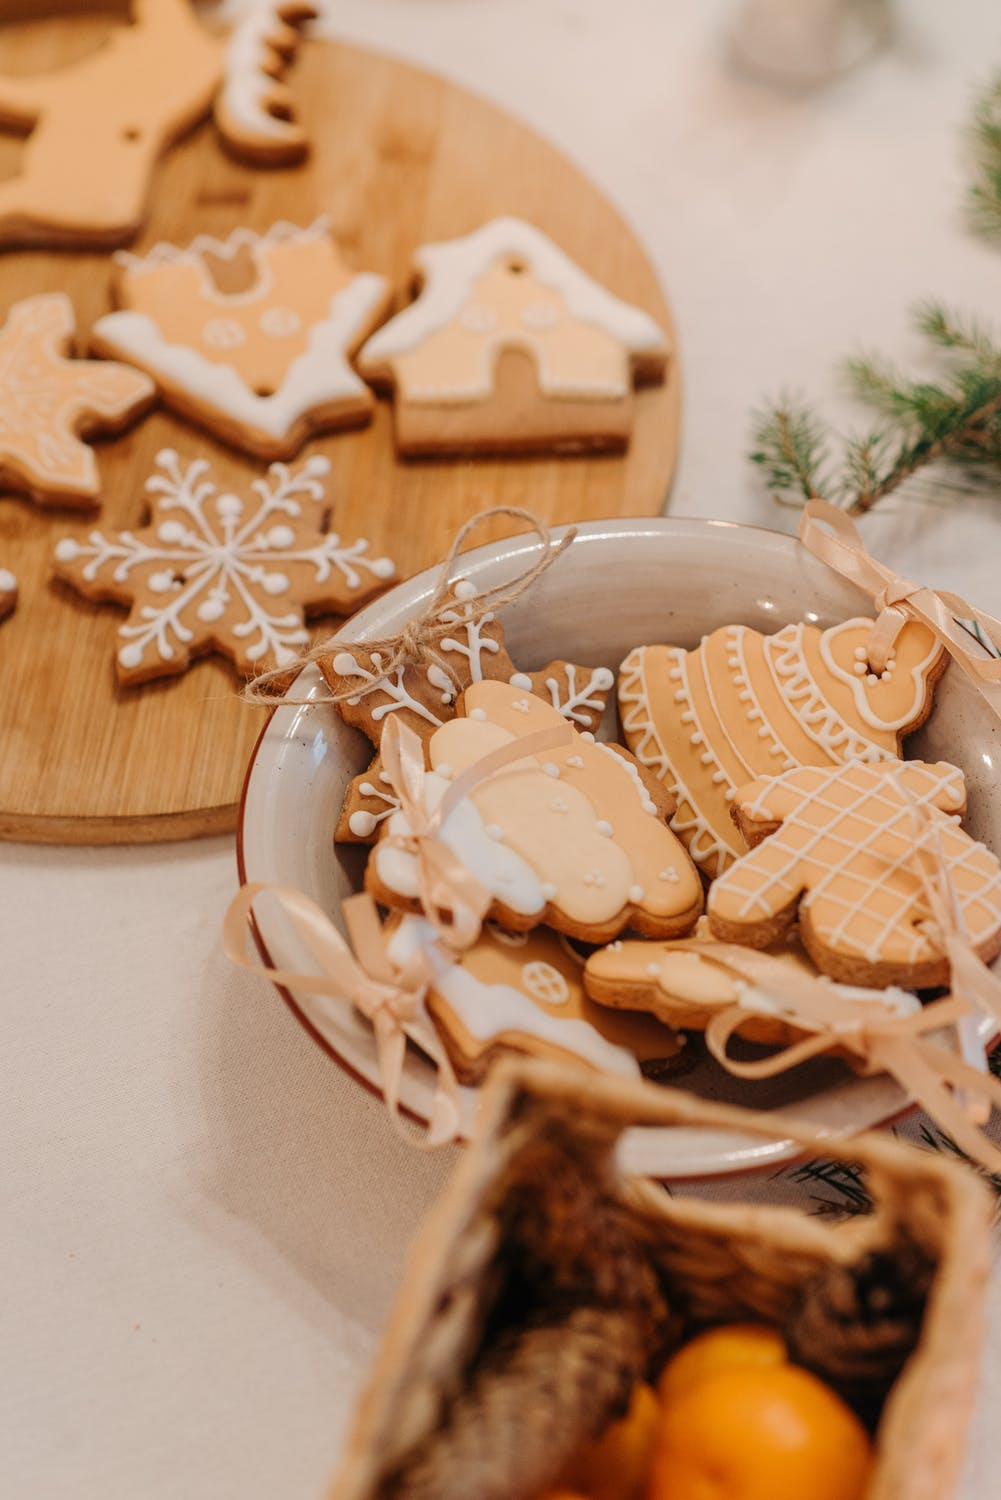 Christmas aesthetic wallpaper with cookies